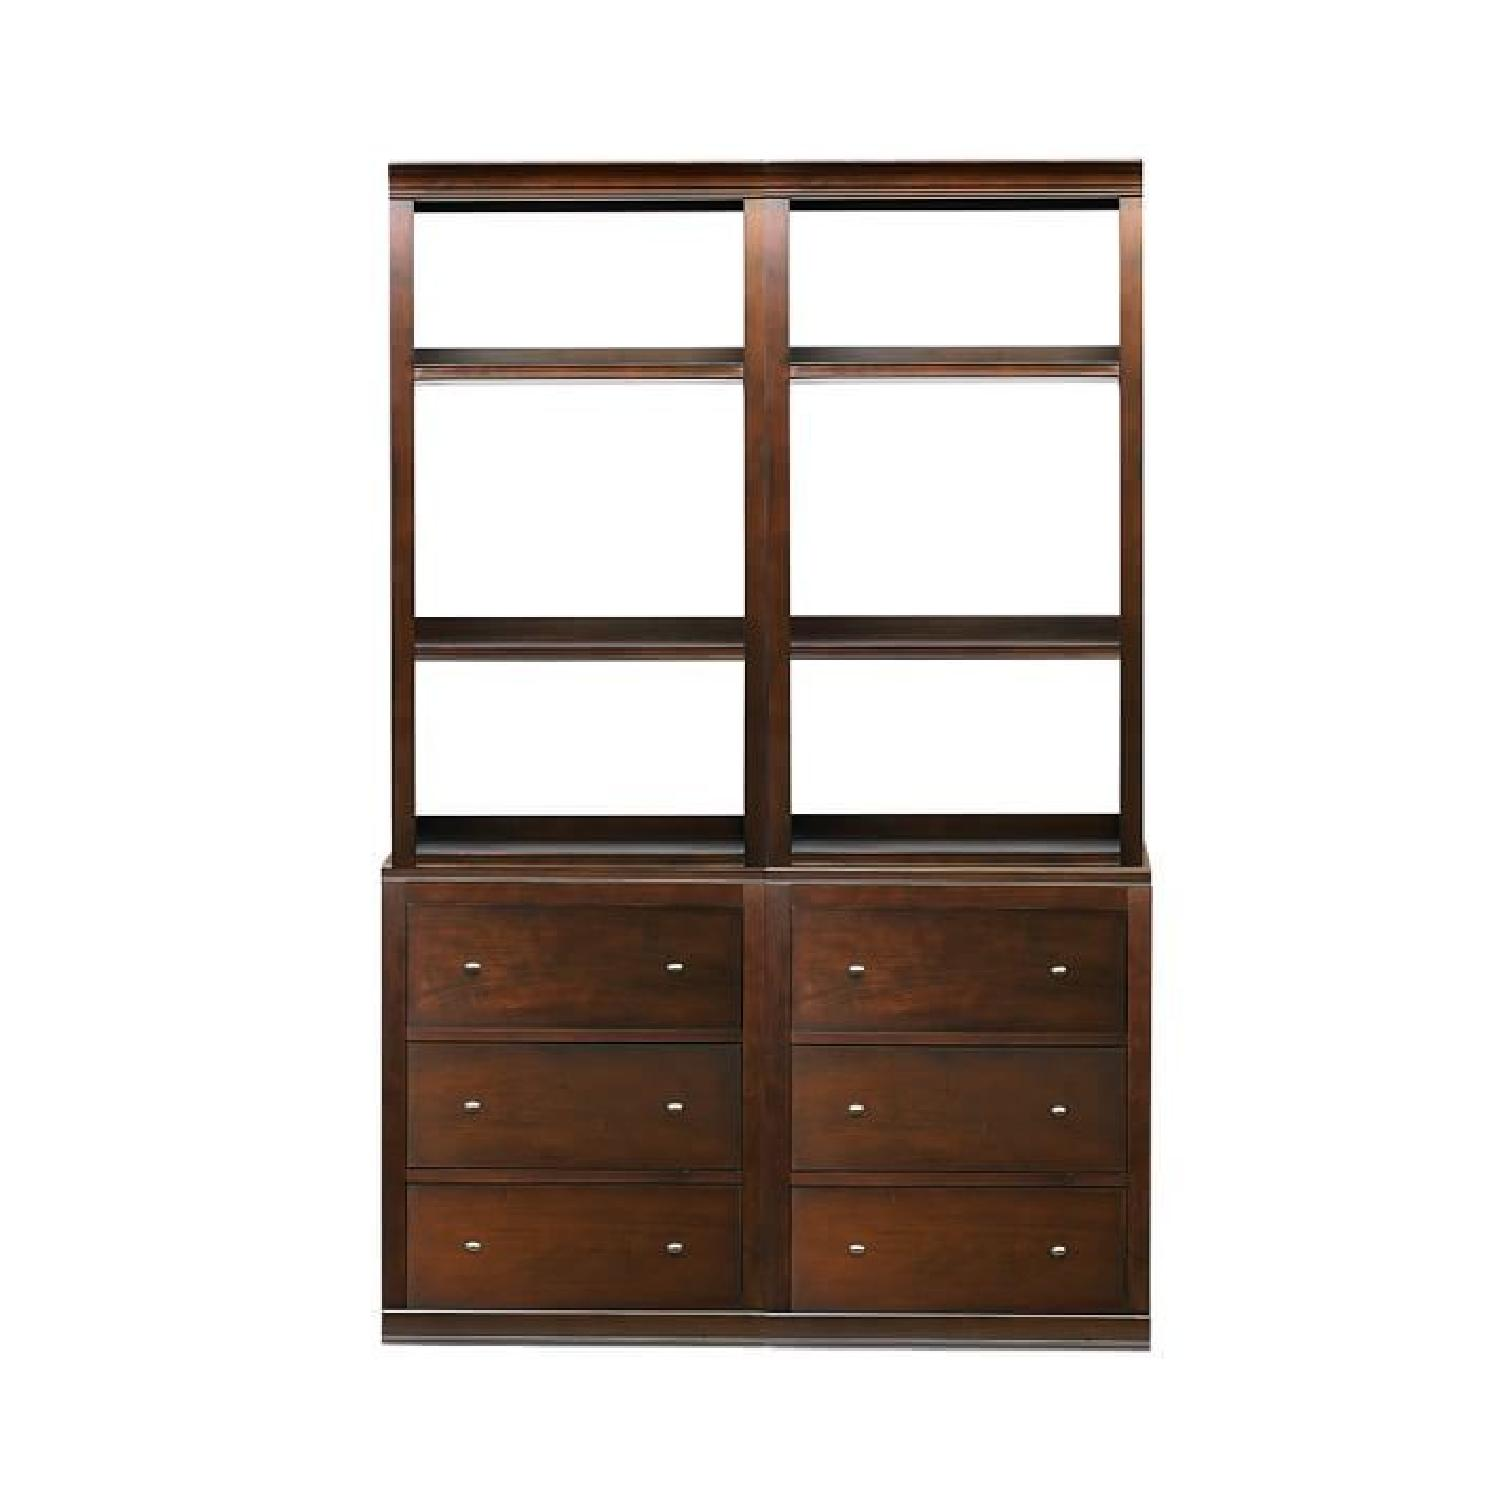 Pottery Barn Logan Bookcases w/ Drawers in Mahogany